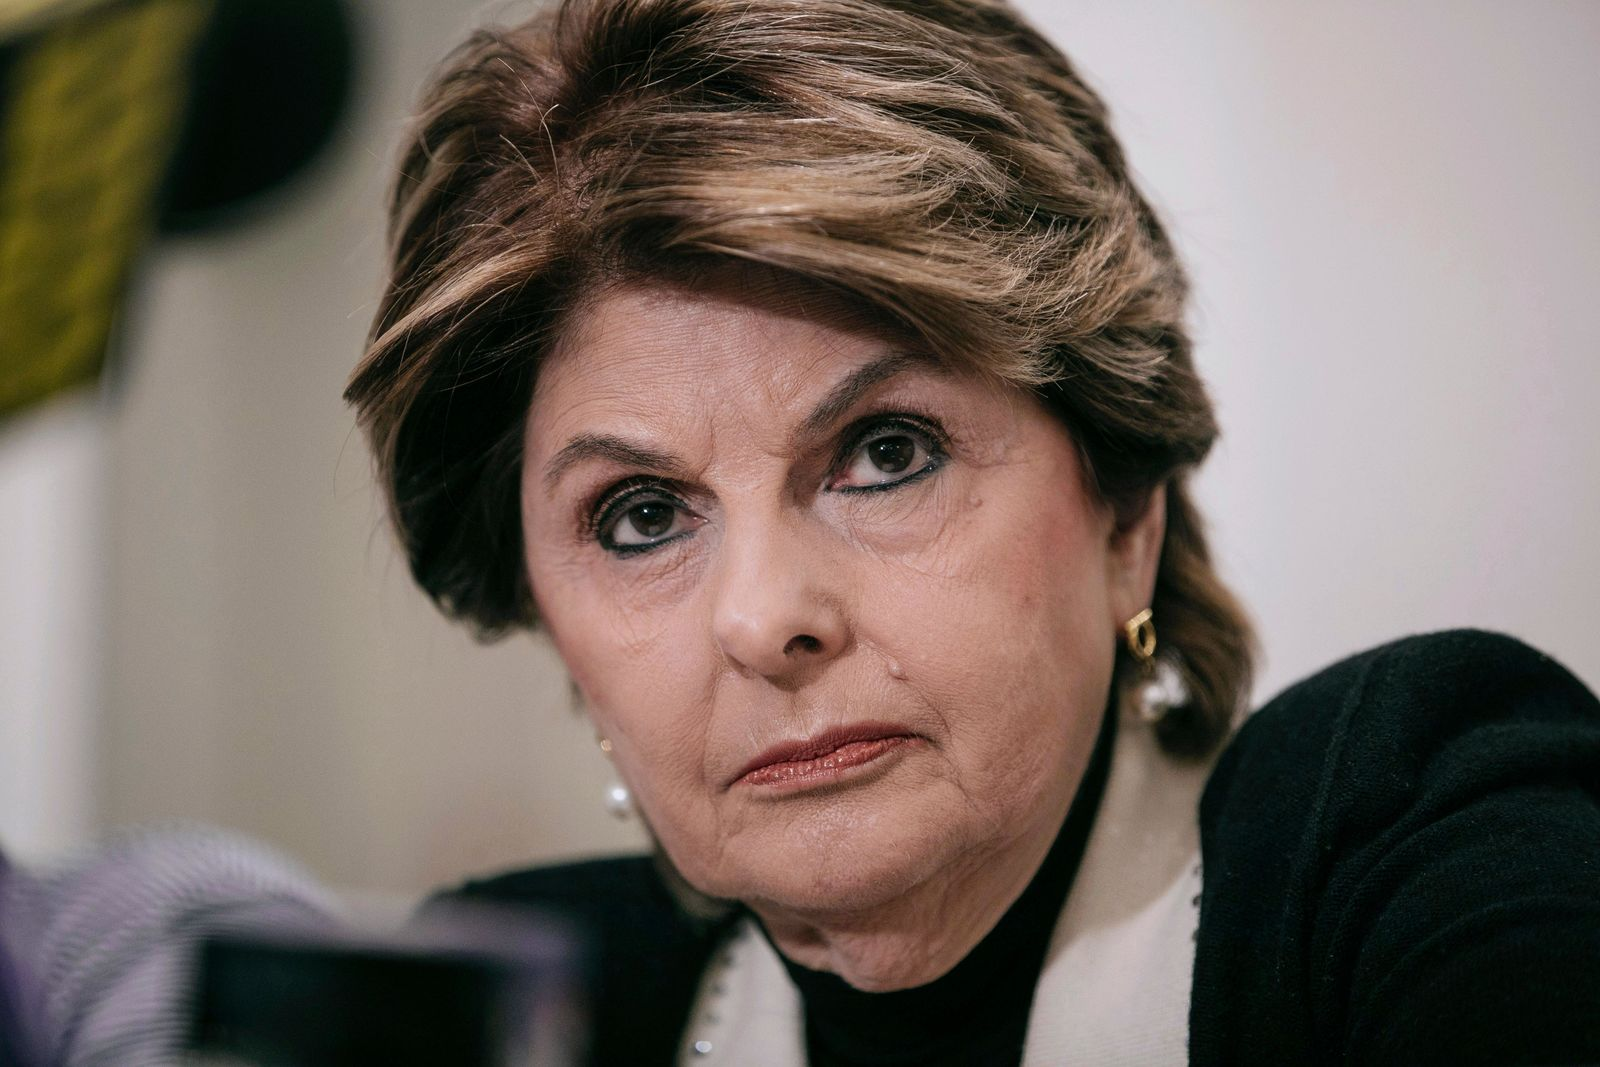 FILE- In this March 10, 2019 file photo, attorney Gloria Allred takes questions during a press conference in New York announcing a video tape said to present further evidence of wrongdoing by recording artist R. Kelly. Allred is among 10 people who will be inducted into the National Women's Hall of Fame during a ceremony on Saturday, Sept. 14, 2019. (AP Photo/Kevin Hagen, File)